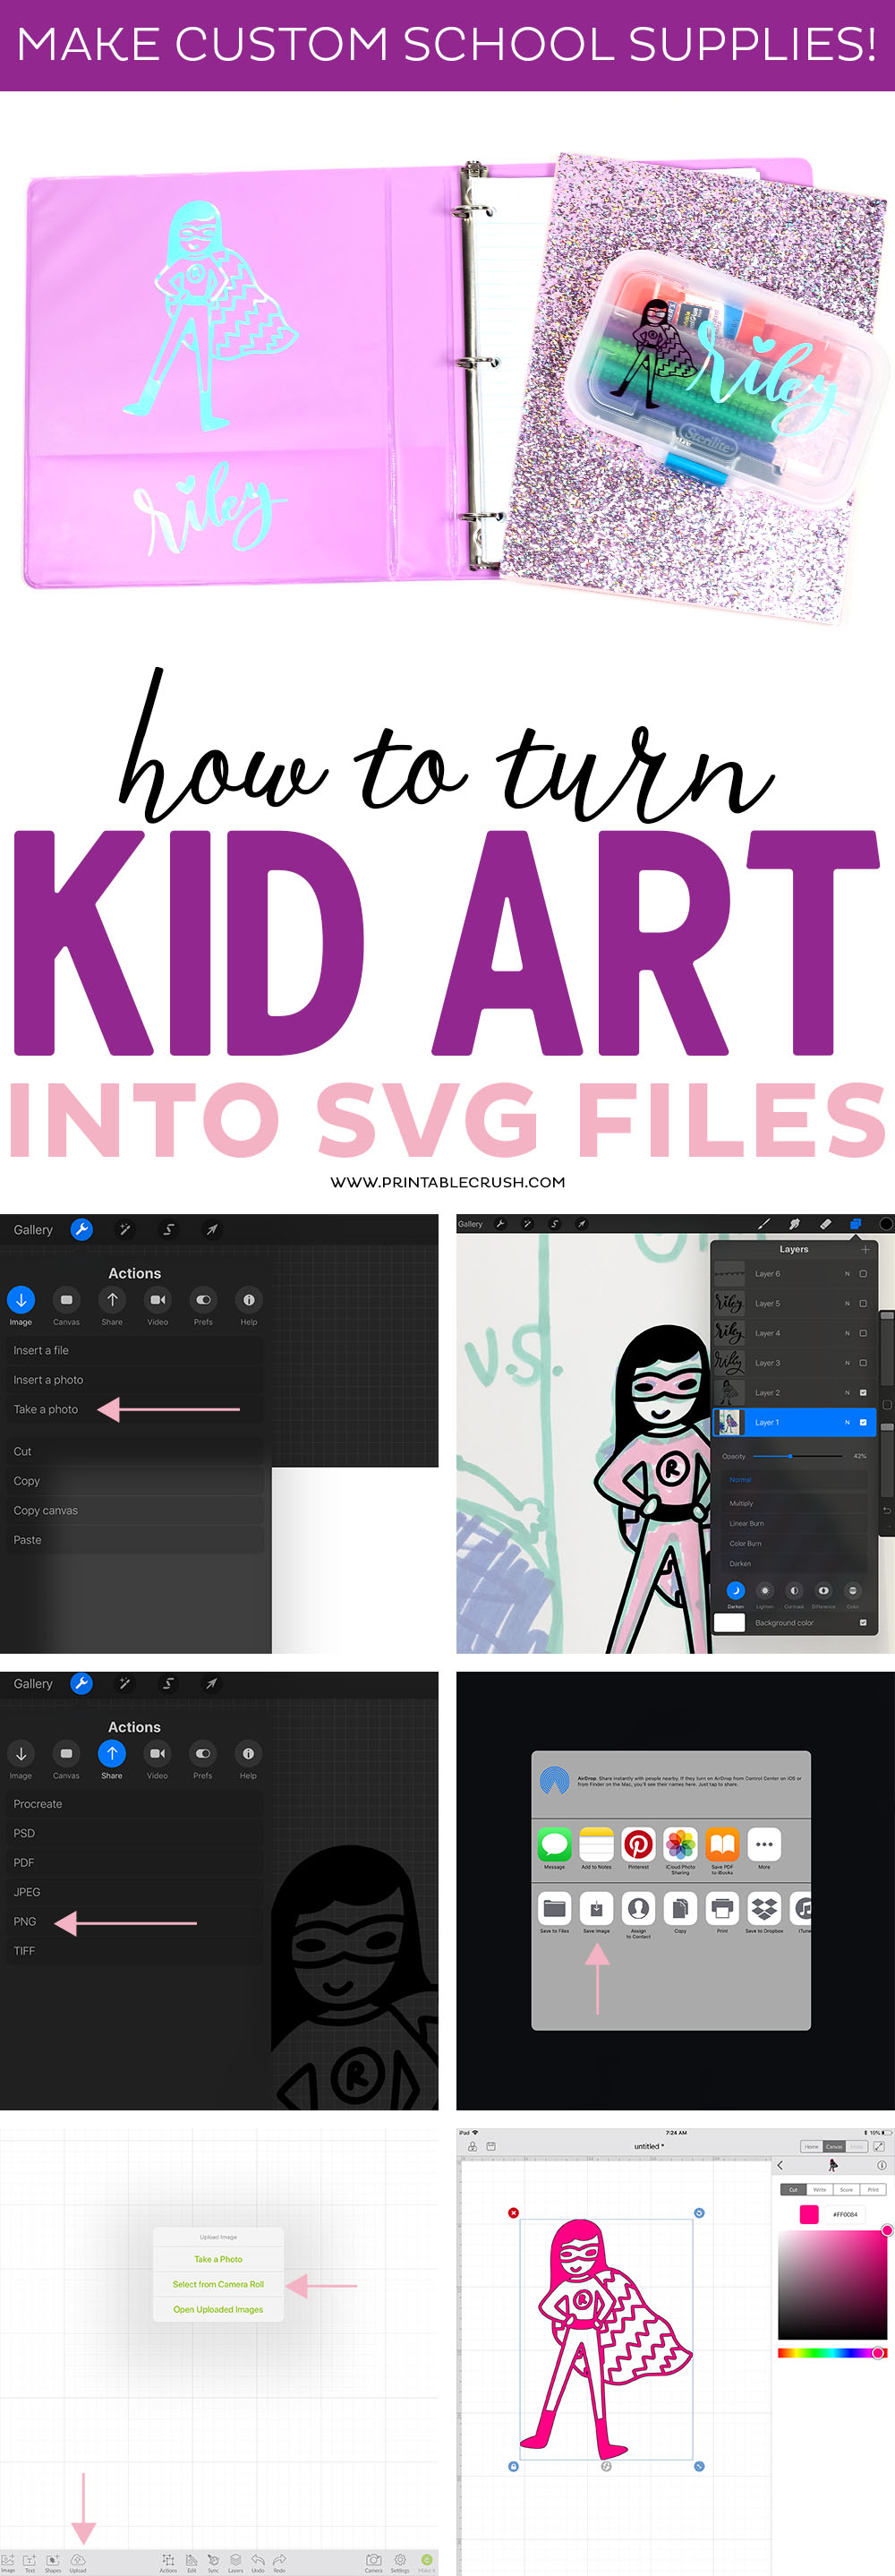 Turn kid art into SVG Files so you can create custom school supplies, kid room decor, and vinyl projects.